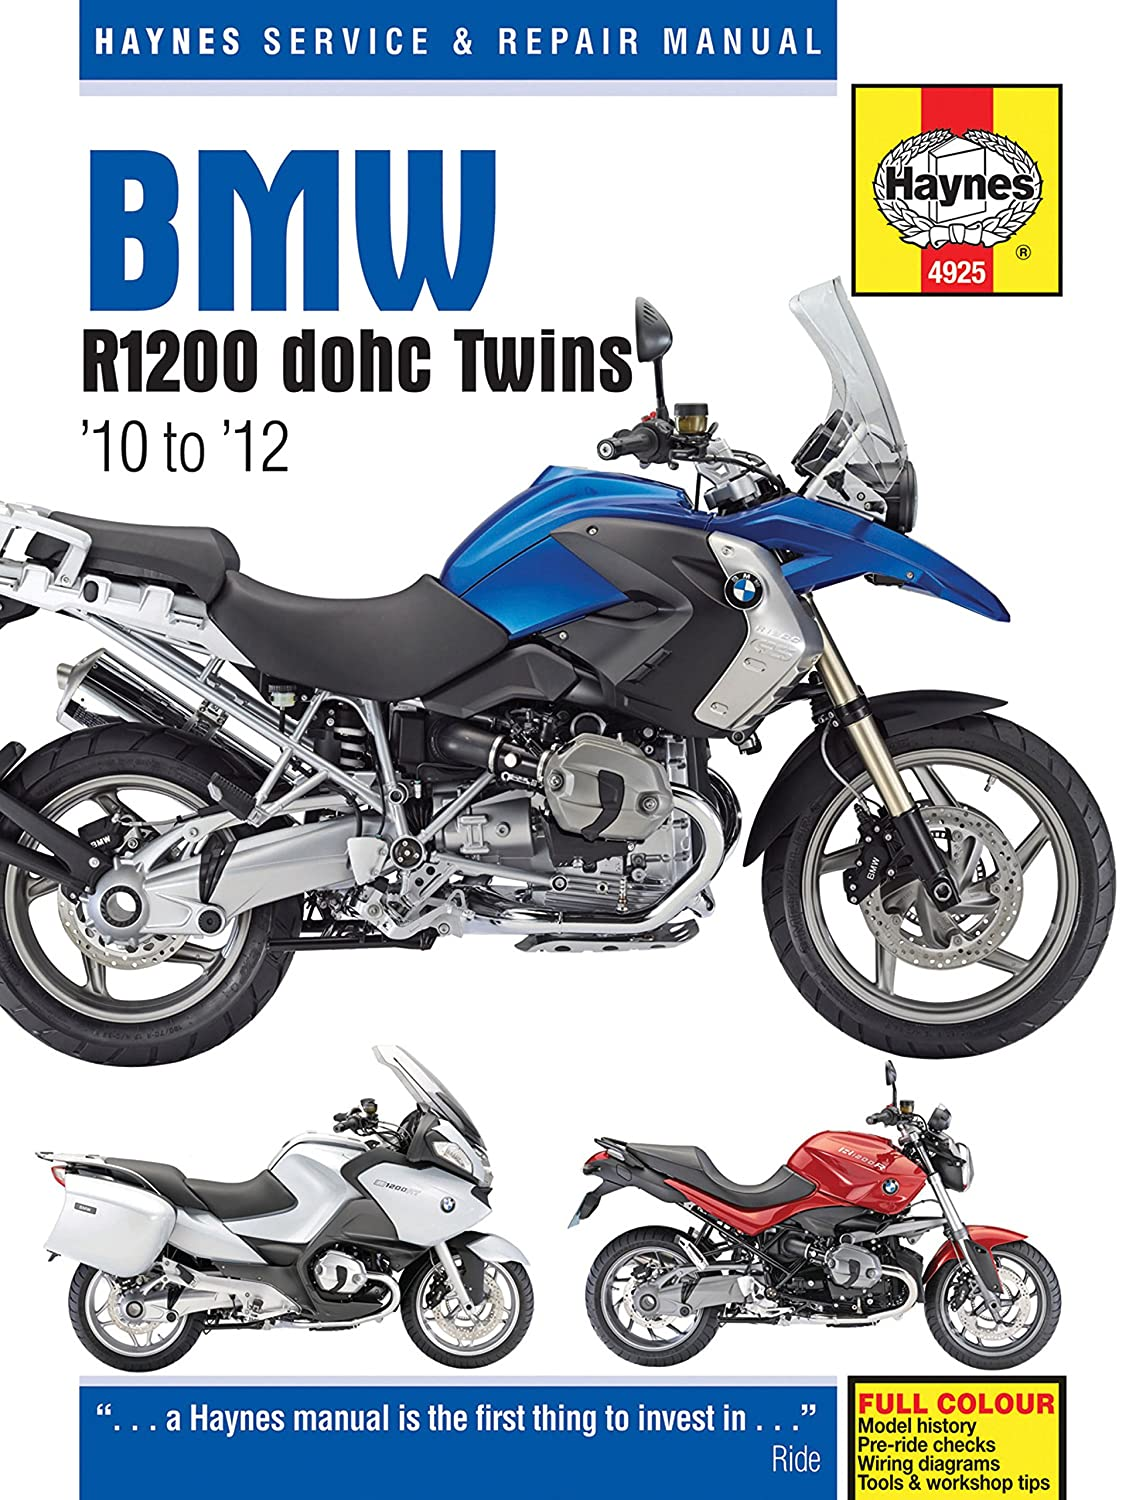 Amazon.com: 2010-2012 BMW R1200 GS R RT HAYNES REPAIR MANUAL 4925:  Automotive